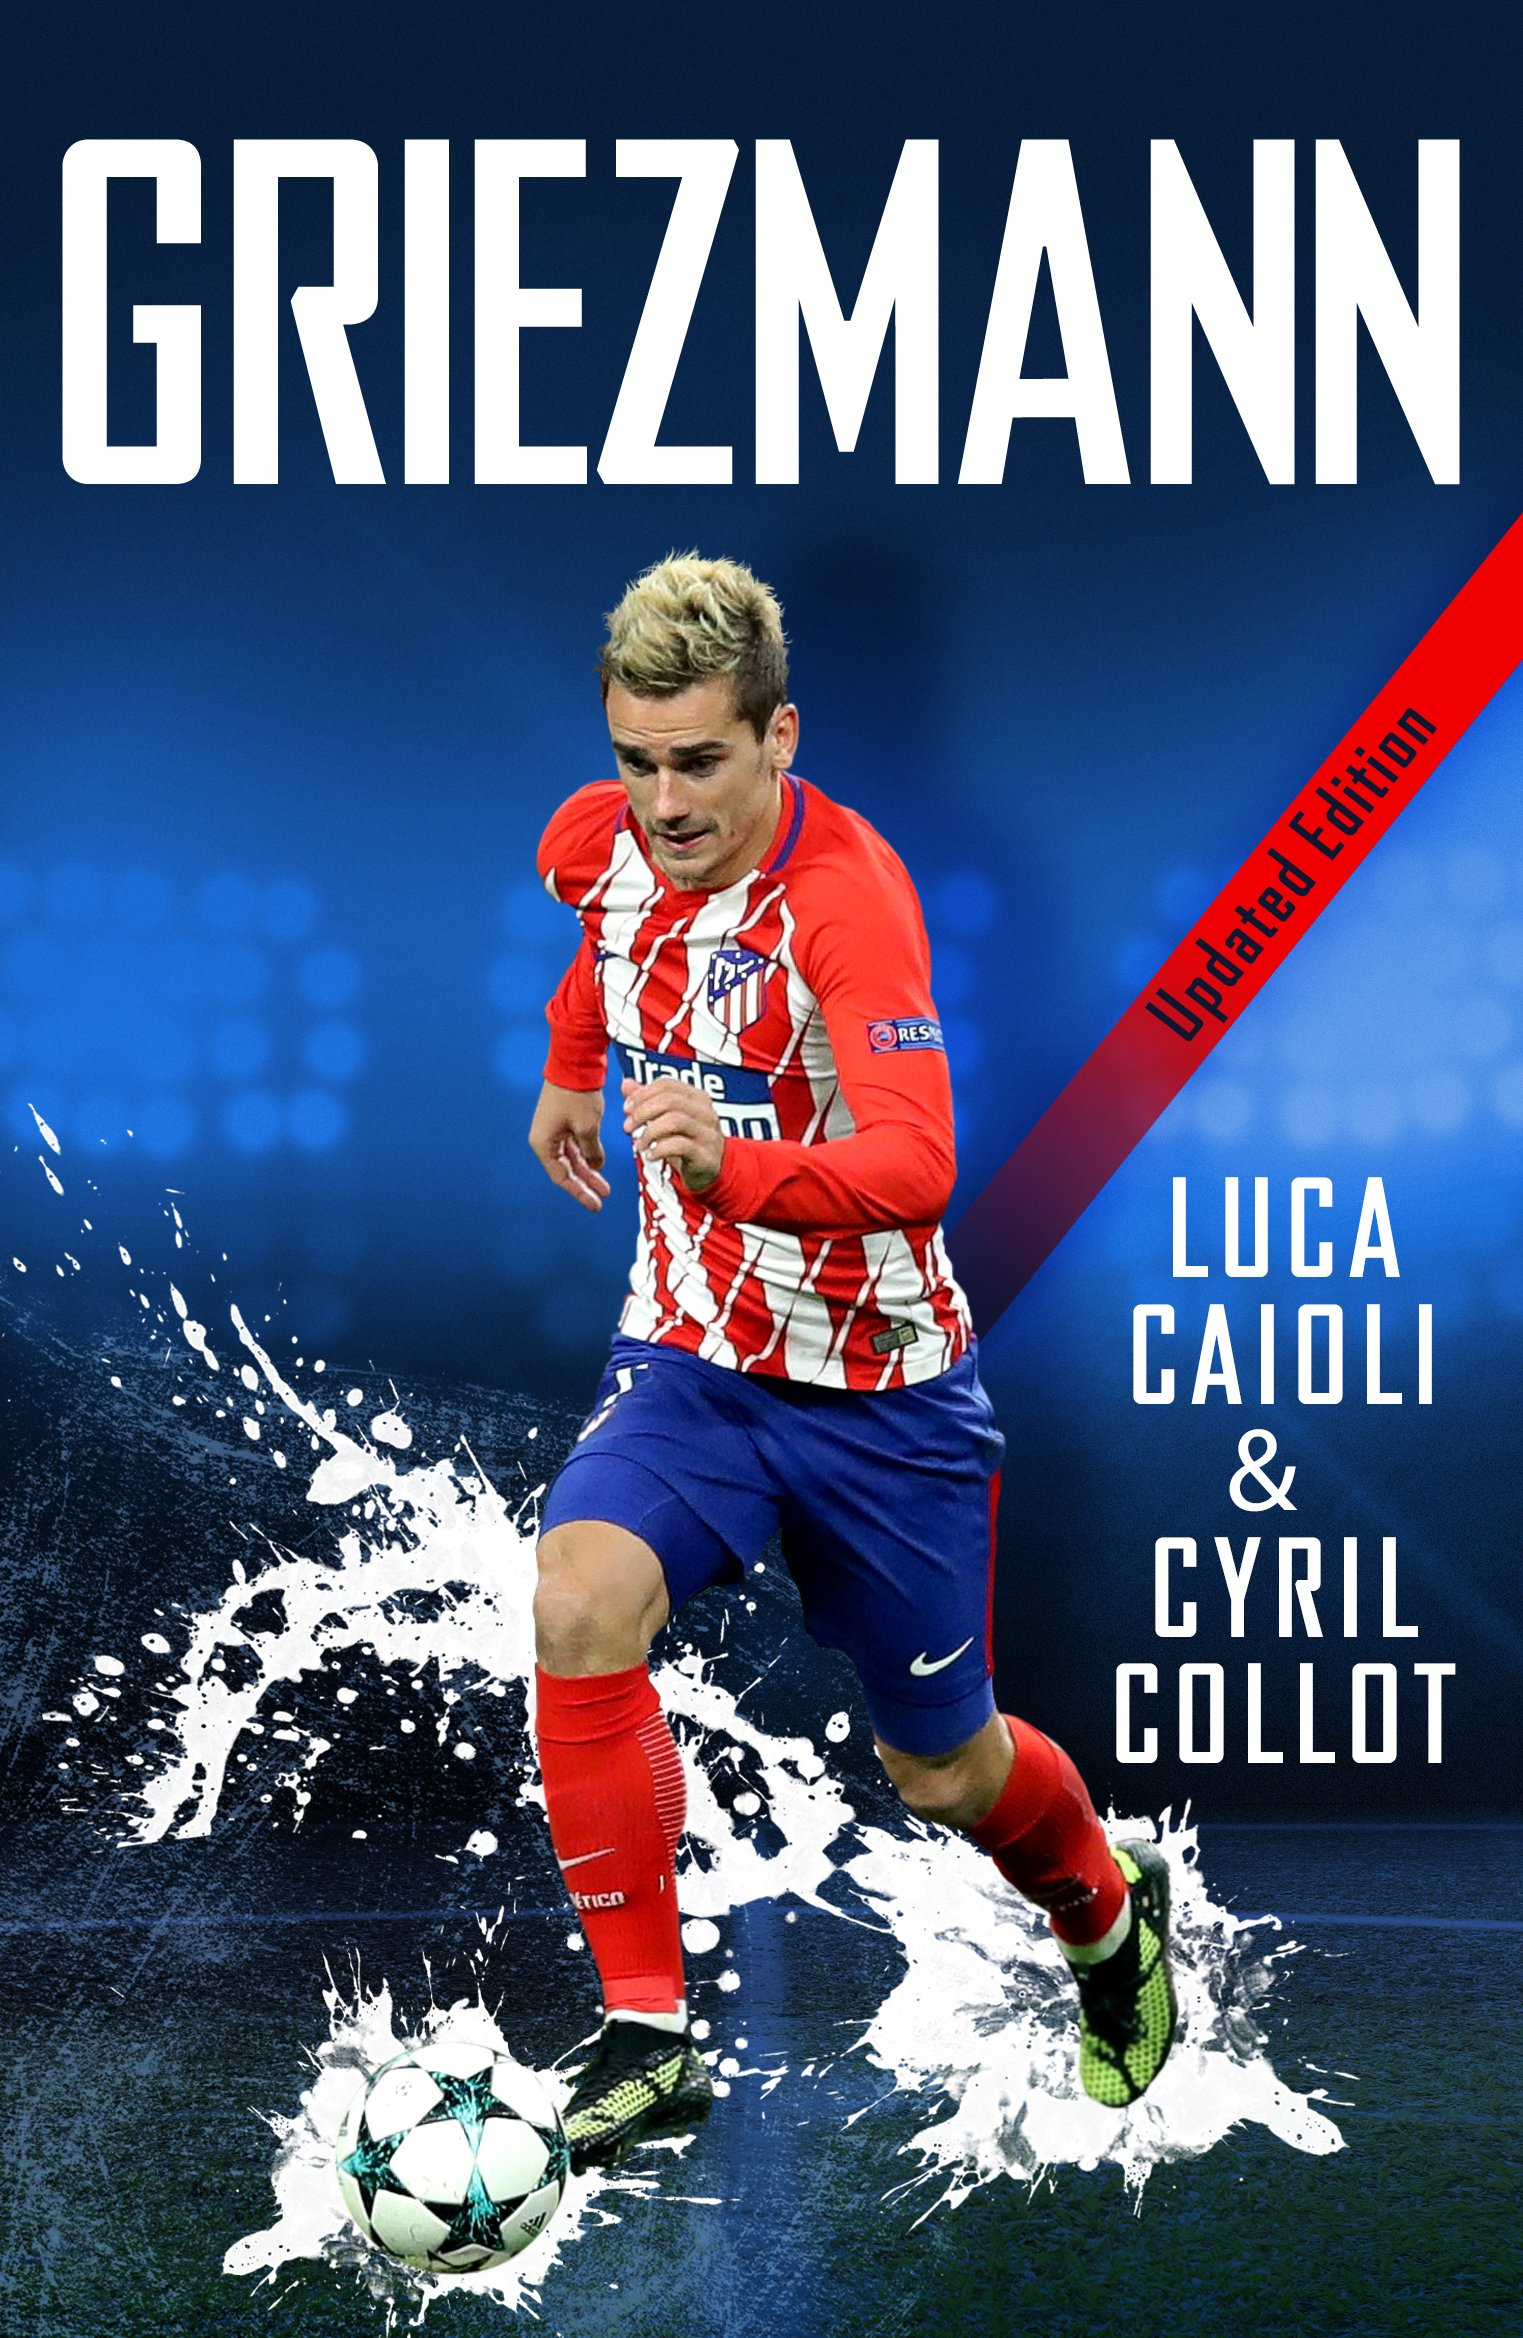 Griezmann - 2019 Updated Edition: The Making of France's Mini Maestro (Luca Caioli)